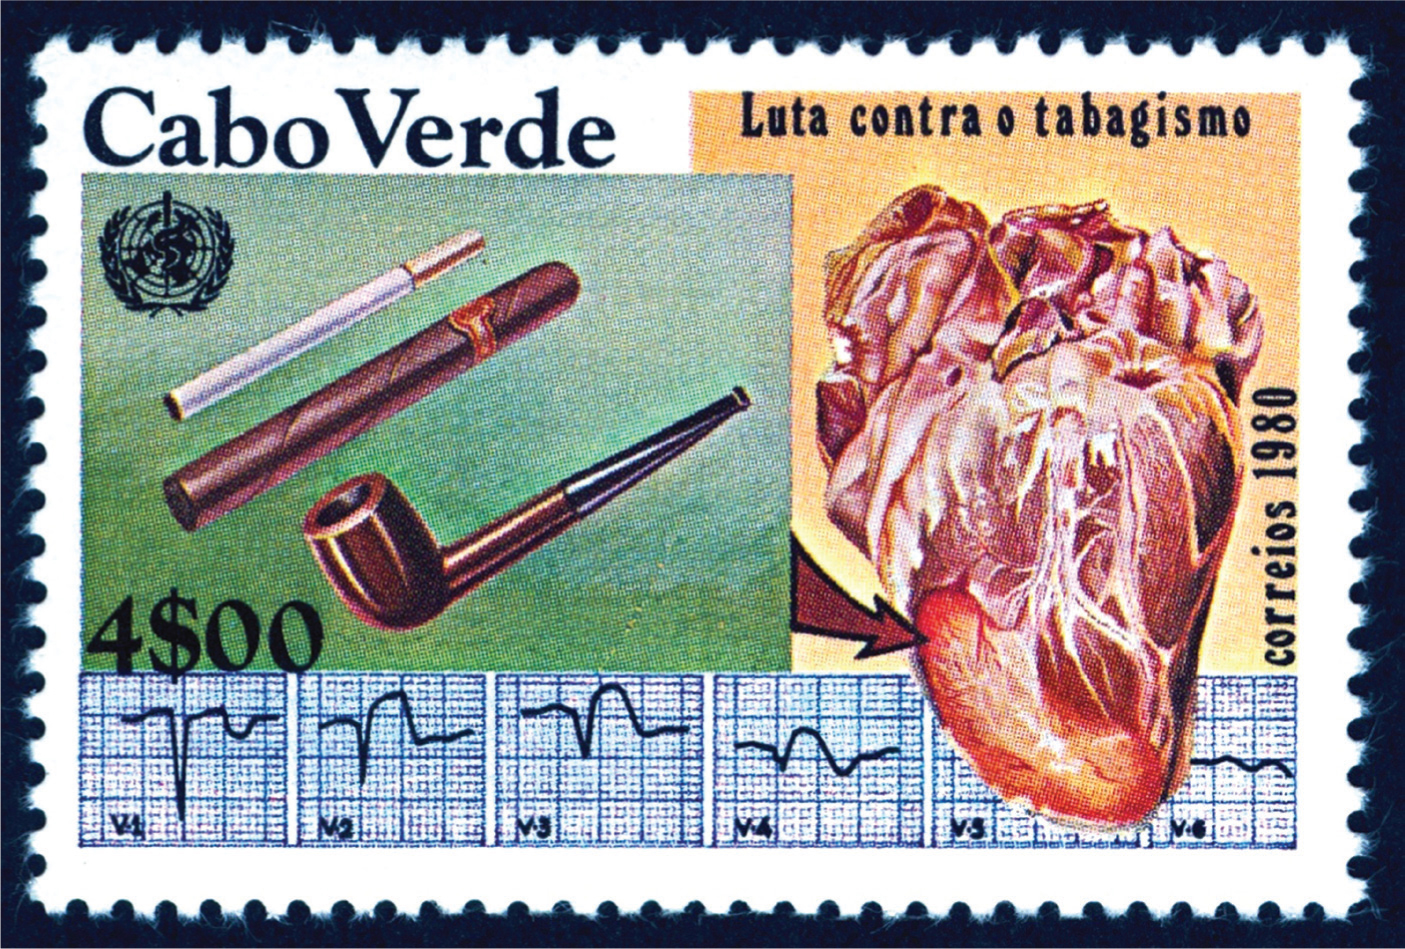 Anti-smoking stamp issued by Cape Verde showing an apical myocardial infarct with its accompanying electrocardiogram with Q waves.Images courtesy of Stanford T. Shulman, MD.